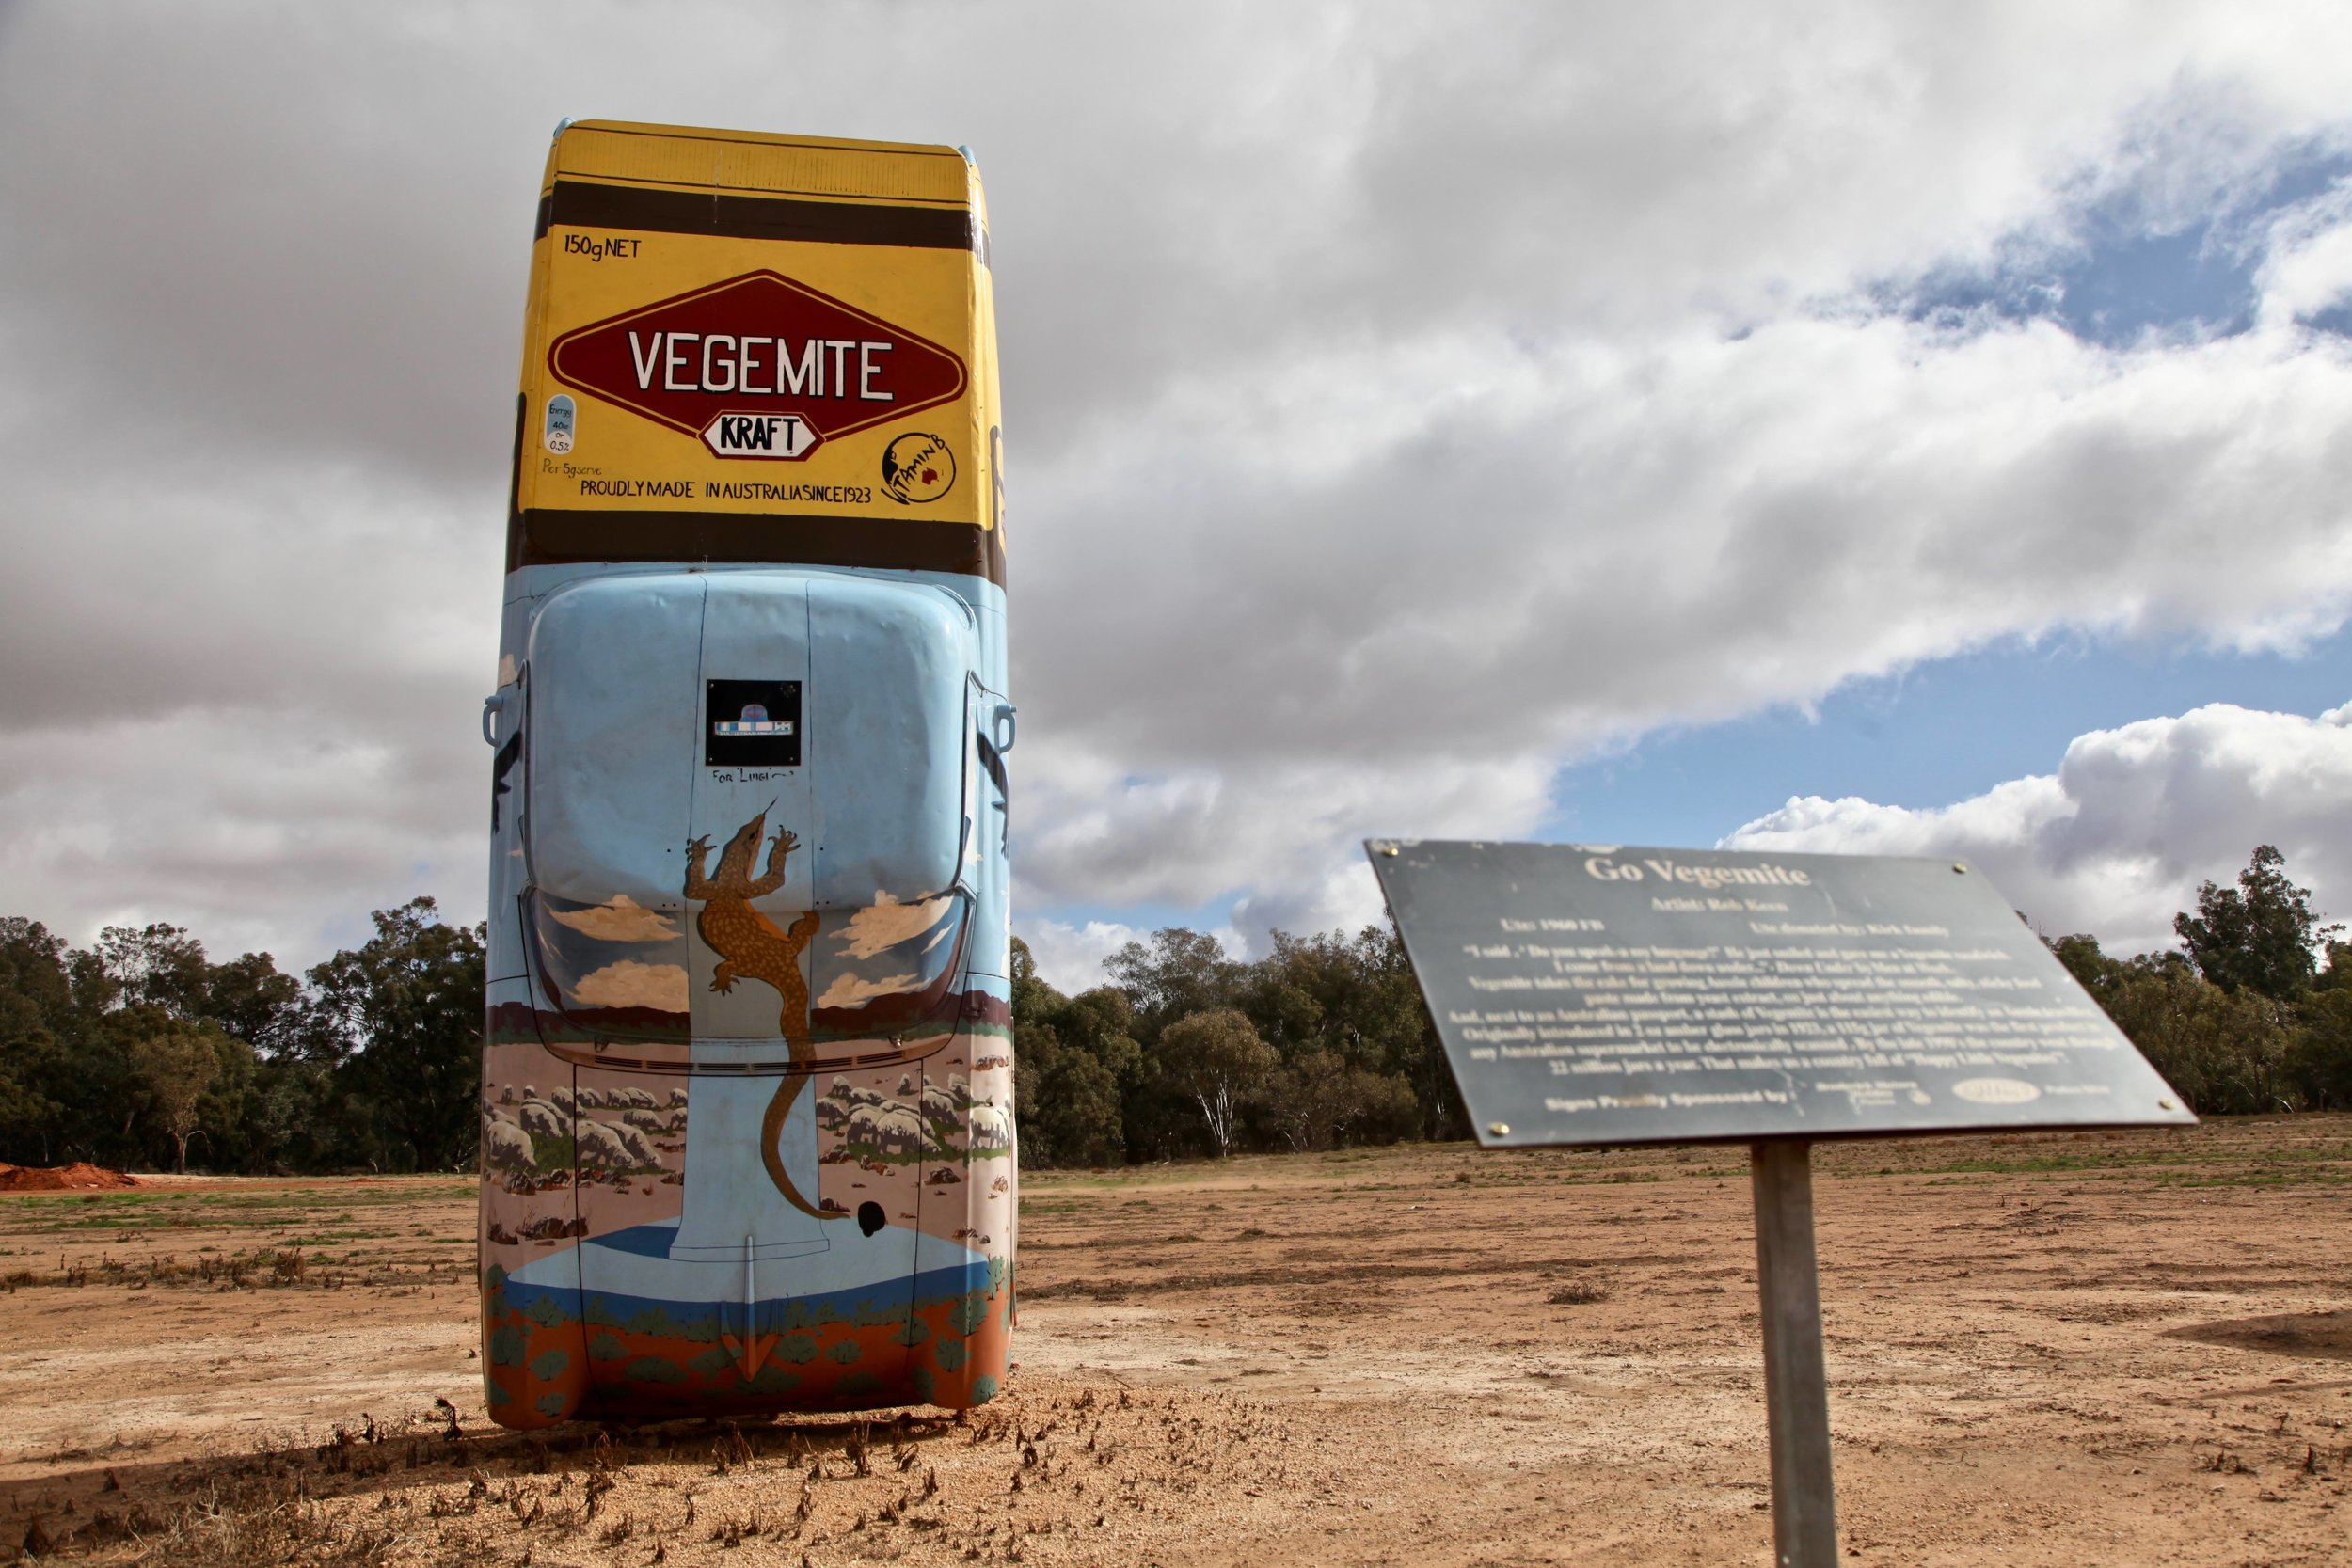 Go Vegemite by Rob Keen